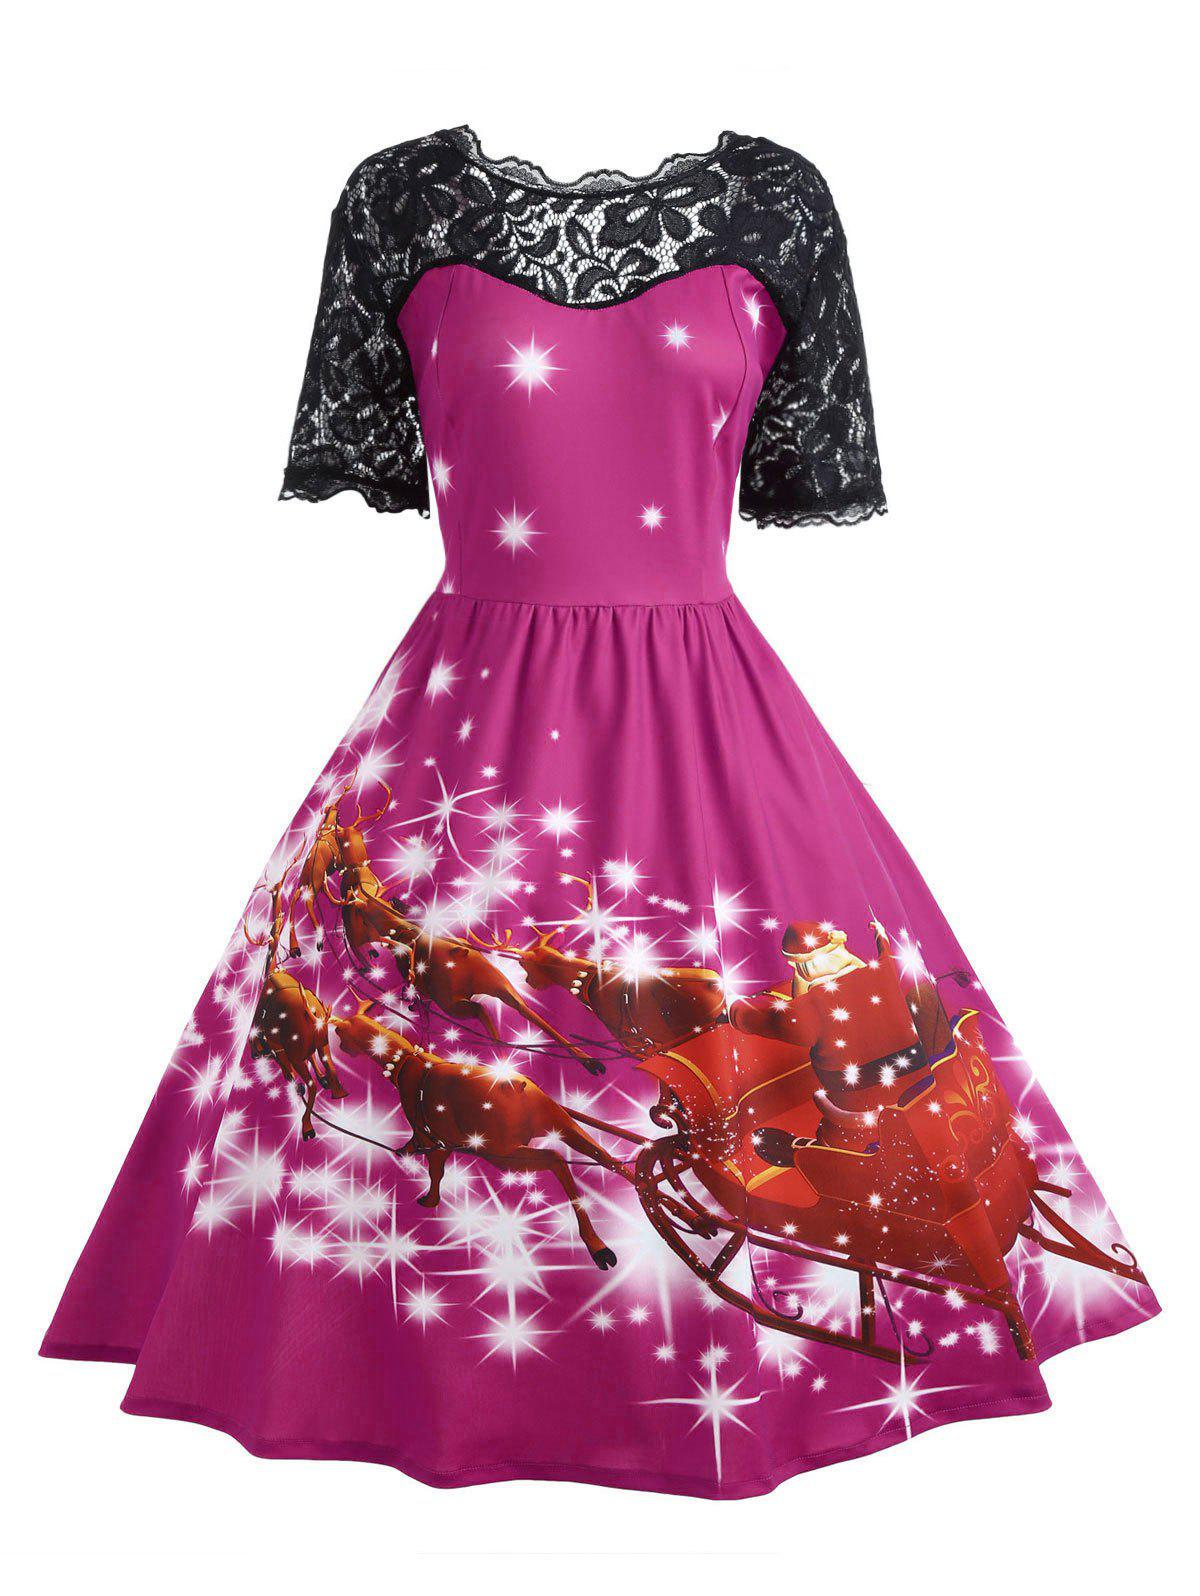 Plus Size Lace Panel Midi Father Christmas Party DressWOMEN<br><br>Size: 4XL; Color: TUTTI FRUTTI; Style: Cute; Material: Cotton Blend,Polyester; Silhouette: Ball Gown; Dresses Length: Mid-Calf; Neckline: Scoop Neck; Sleeve Length: Short Sleeves; Embellishment: Hollow Out,Lace,Vintage; Pattern Type: Animal,Character,Print,Star; With Belt: No; Season: Fall,Winter; Weight: 0.4700kg; Package Contents: 1 x Dress;